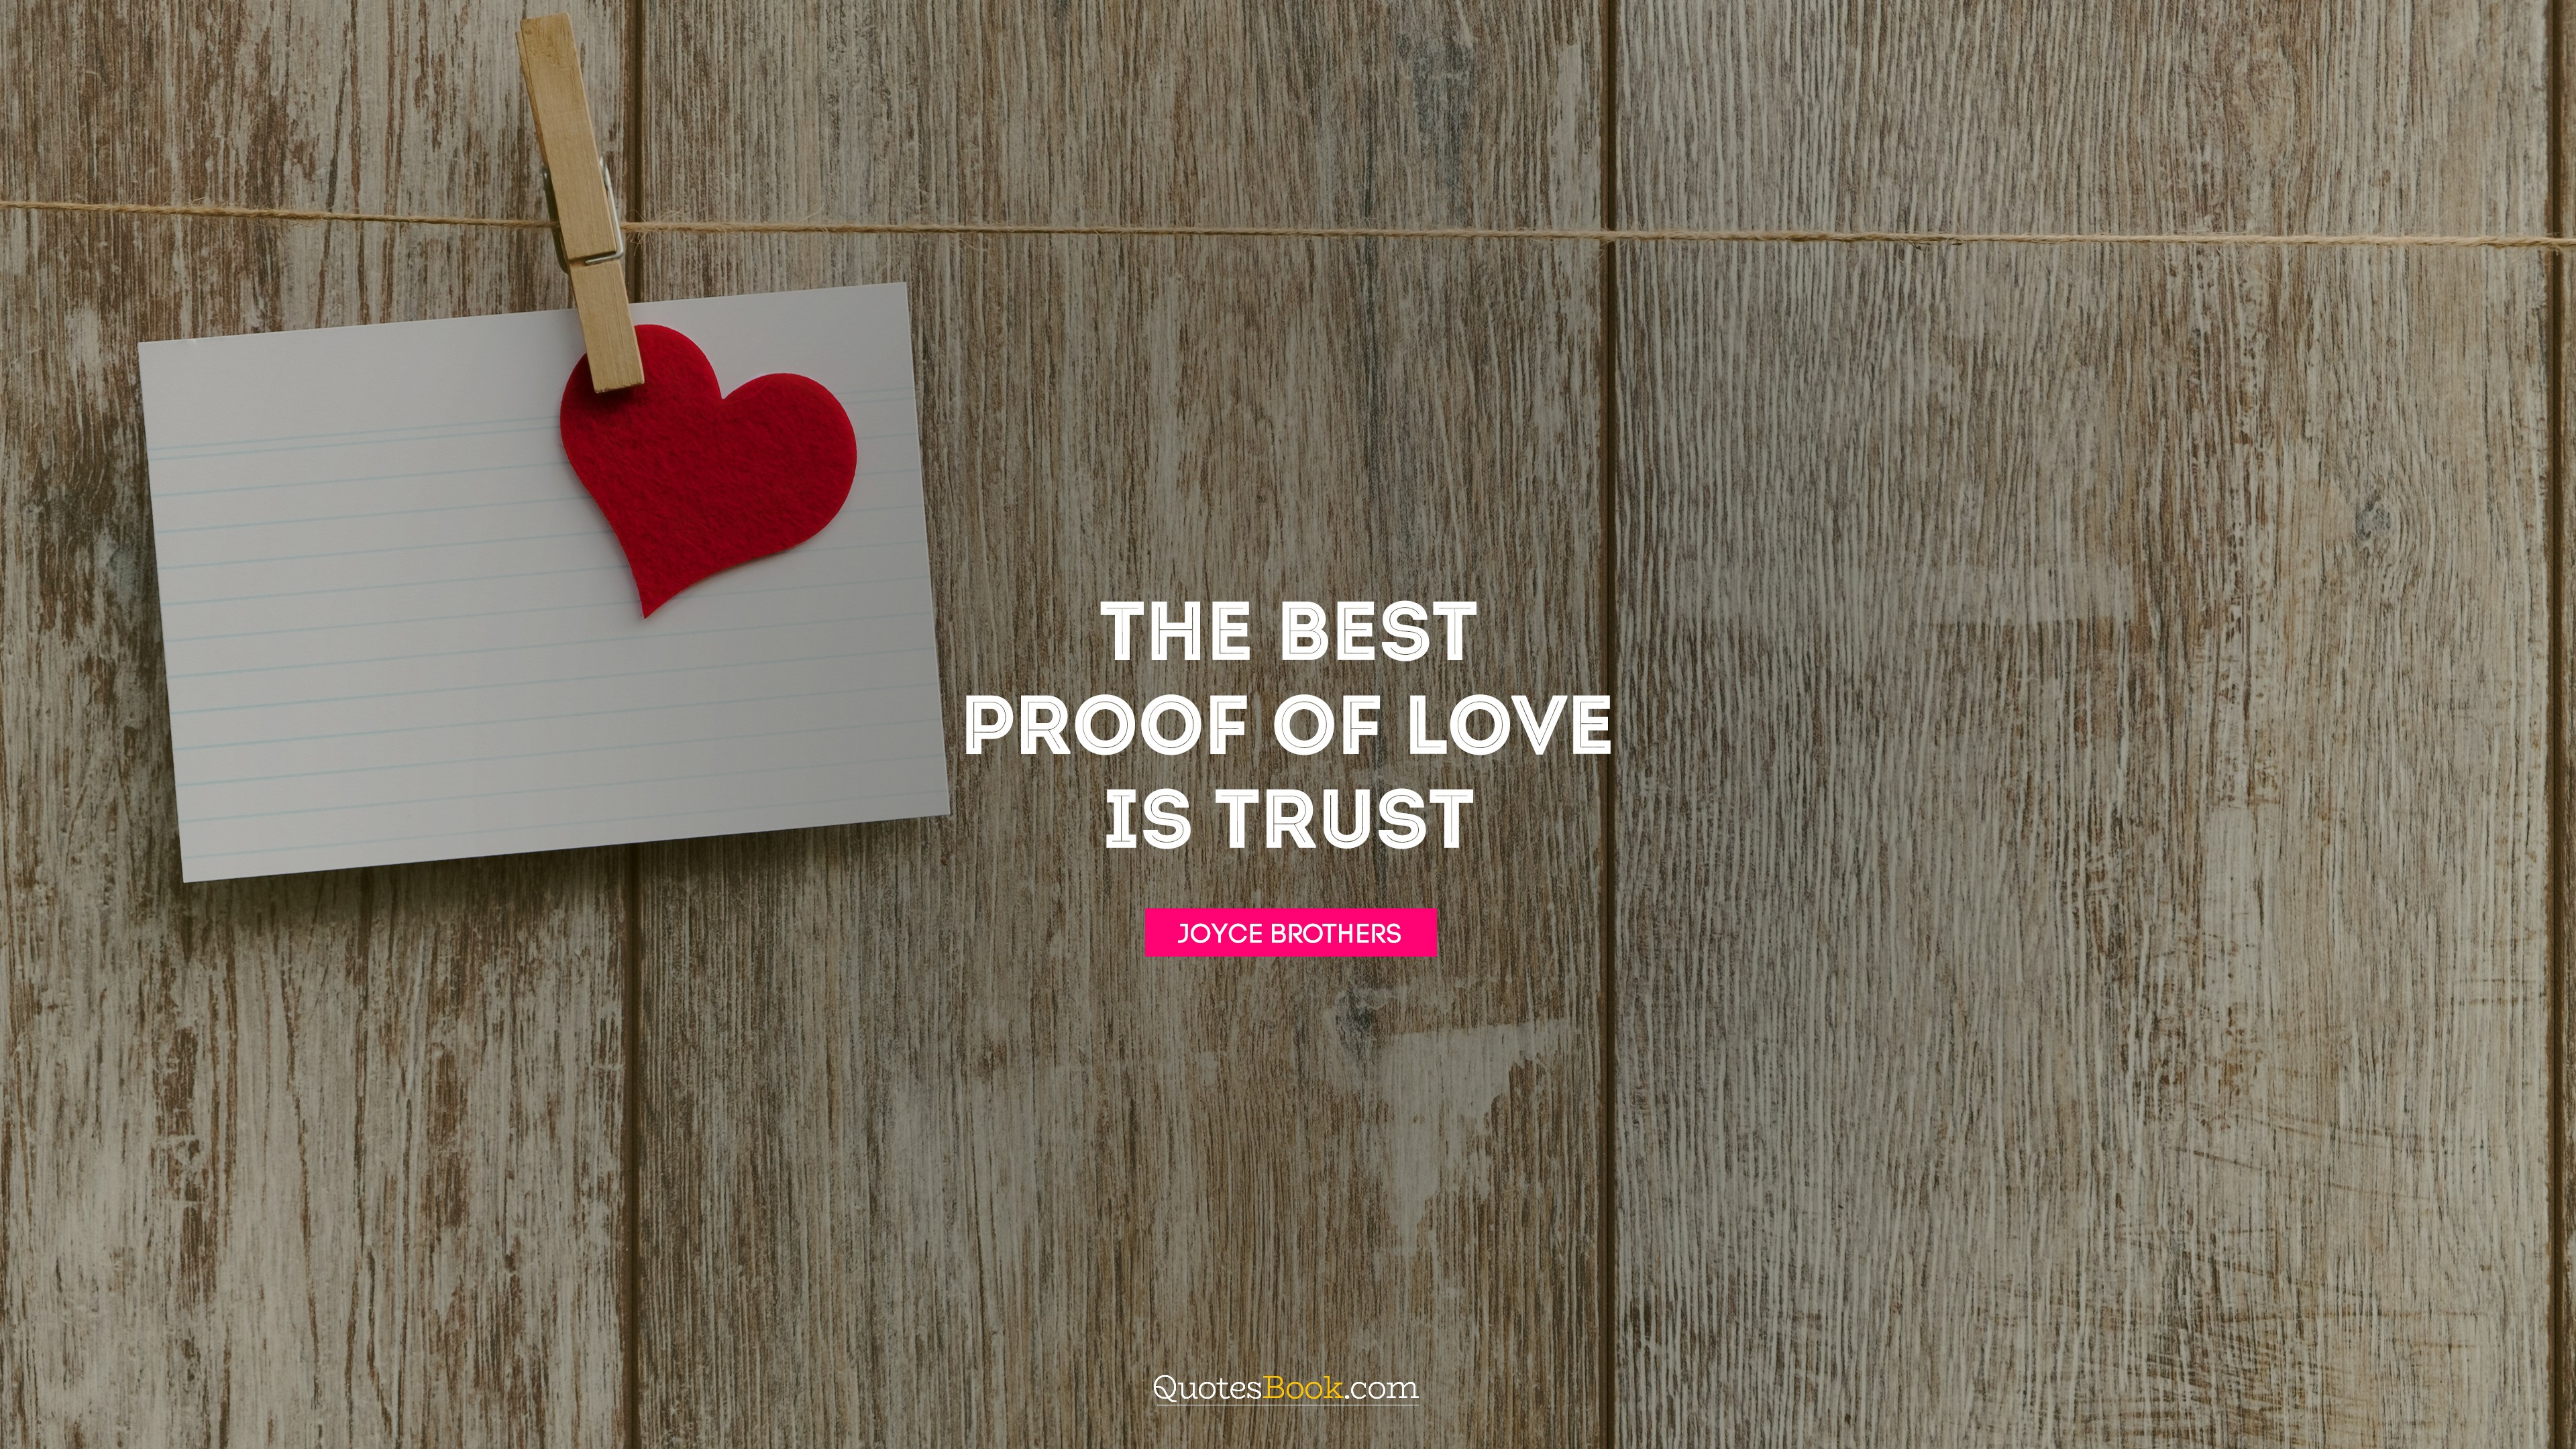 The Best Proof Of Love Is Trust Quote By Joyce Brothers Page 19